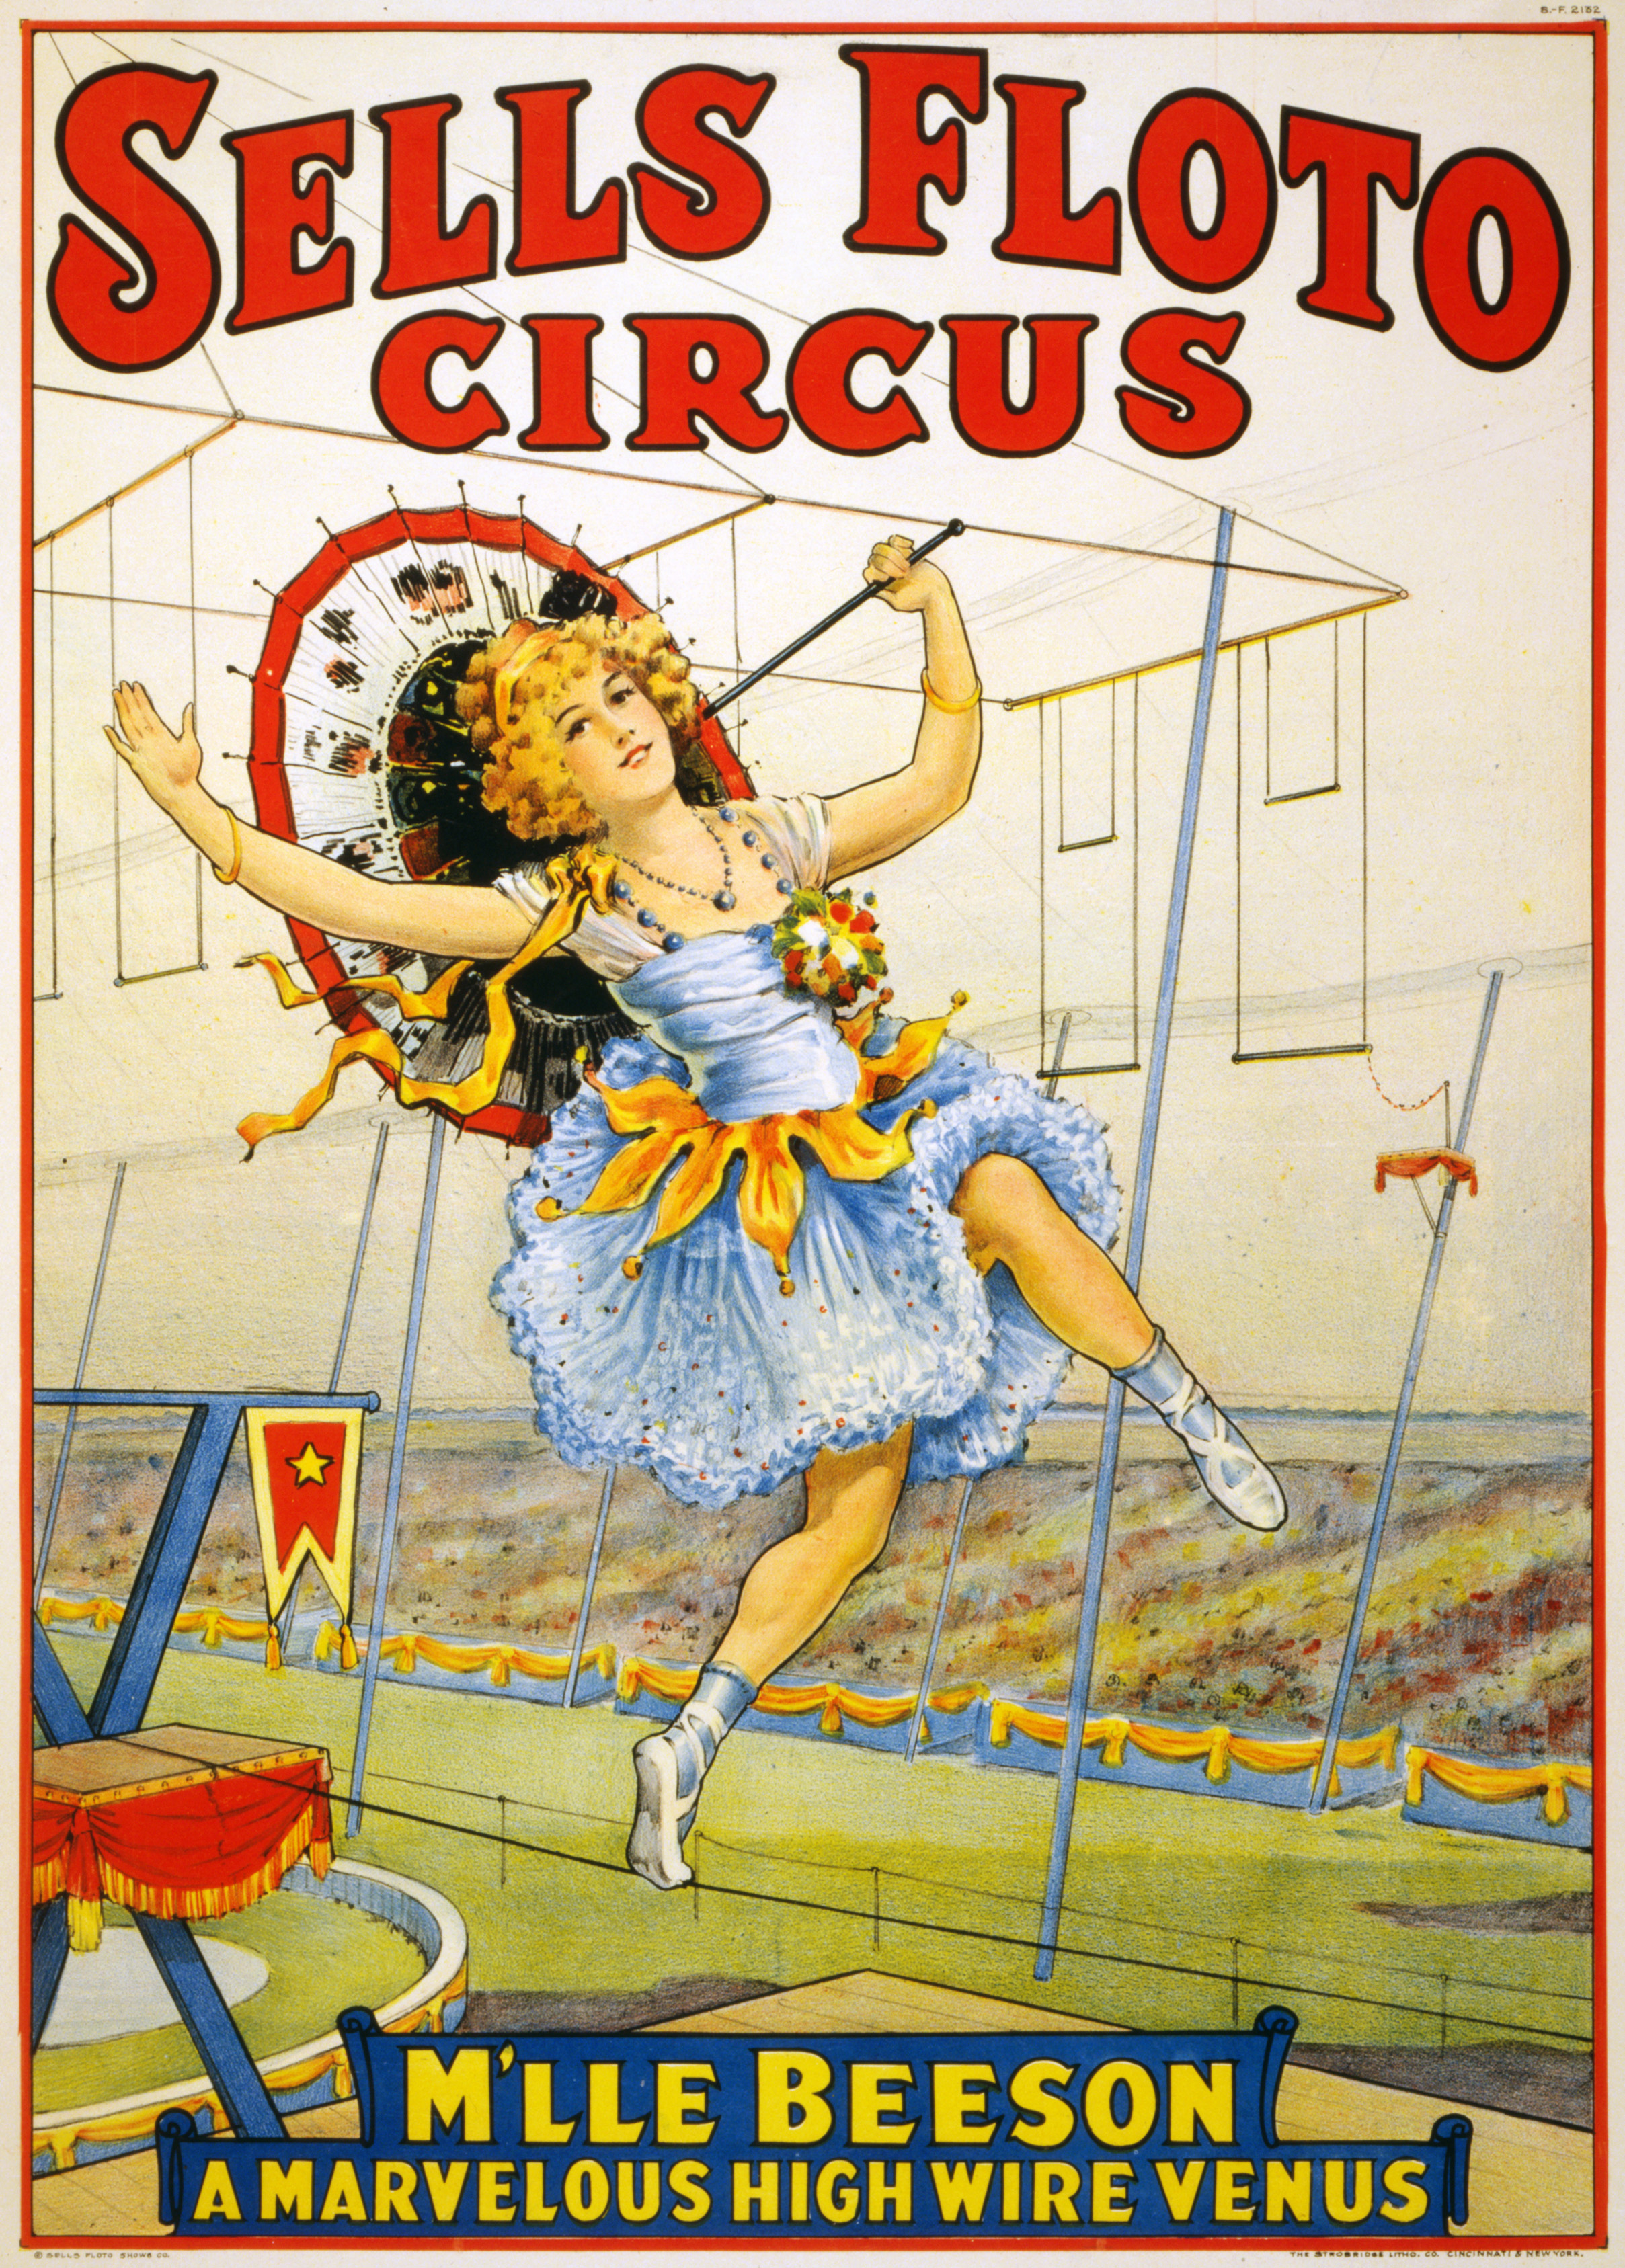 File sells floto circus presents m 39 lle beeson a marvelous for Circus posters free